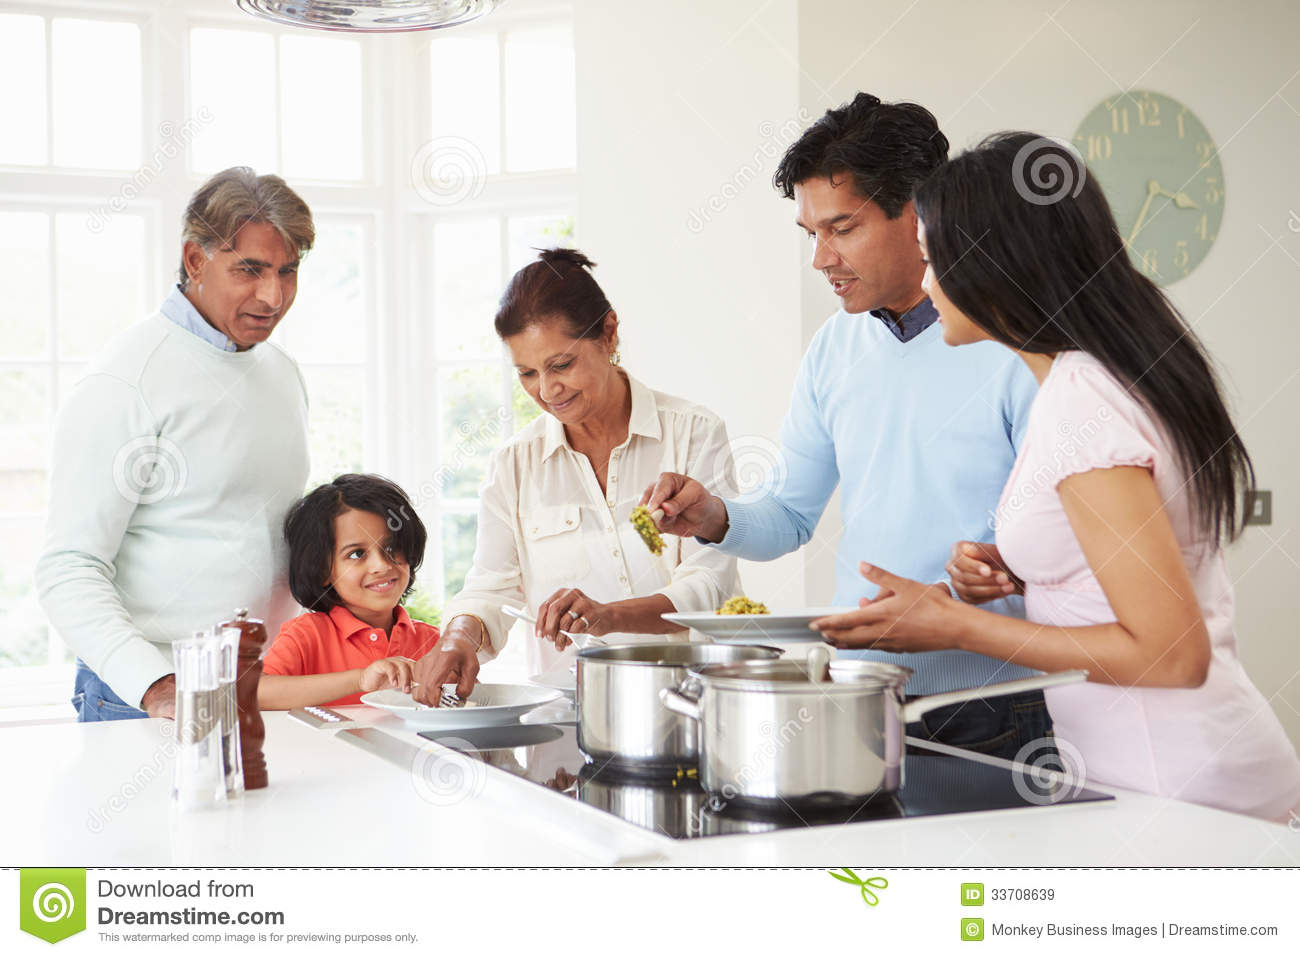 Family cooking kitchen - Multi Generation Indian Family Cooking Meal At Home Royalty Free Stock Images